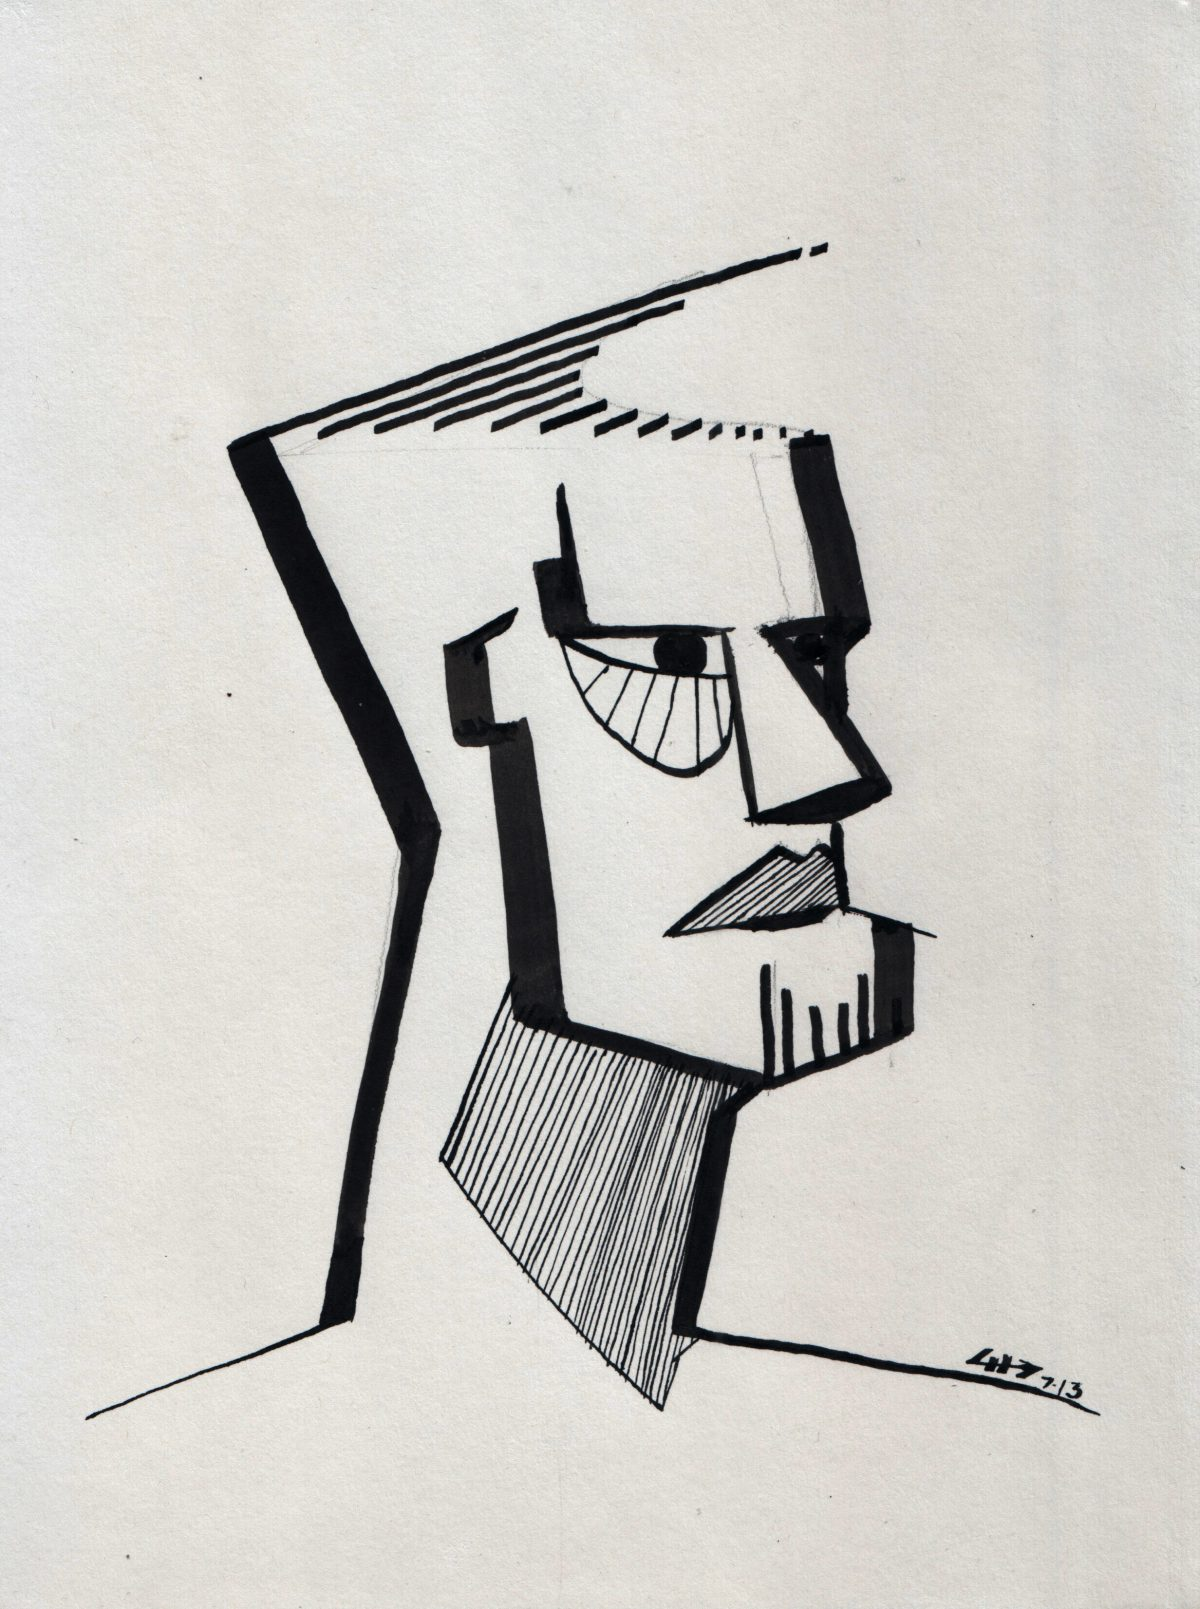 Man with nice haircut - 21x28cm, markers on paper, ink, paper, ch3